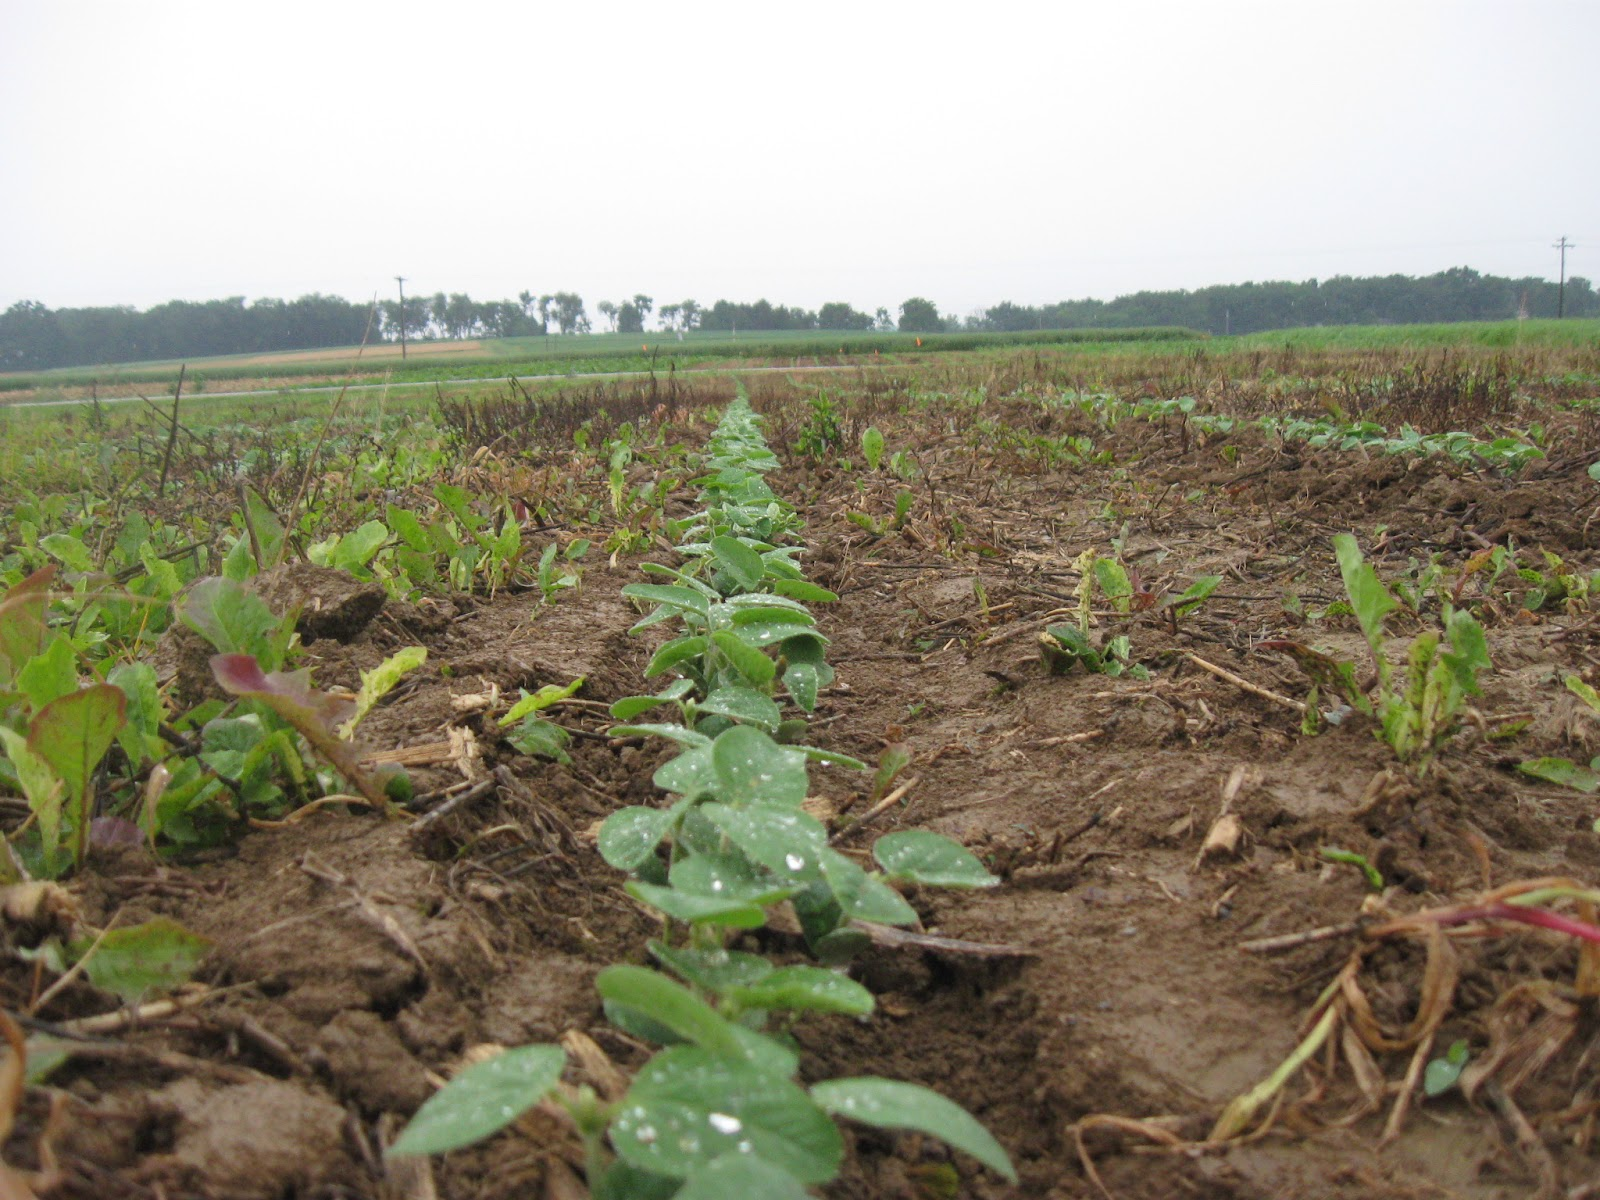 To replant or not to replant a soybean field.